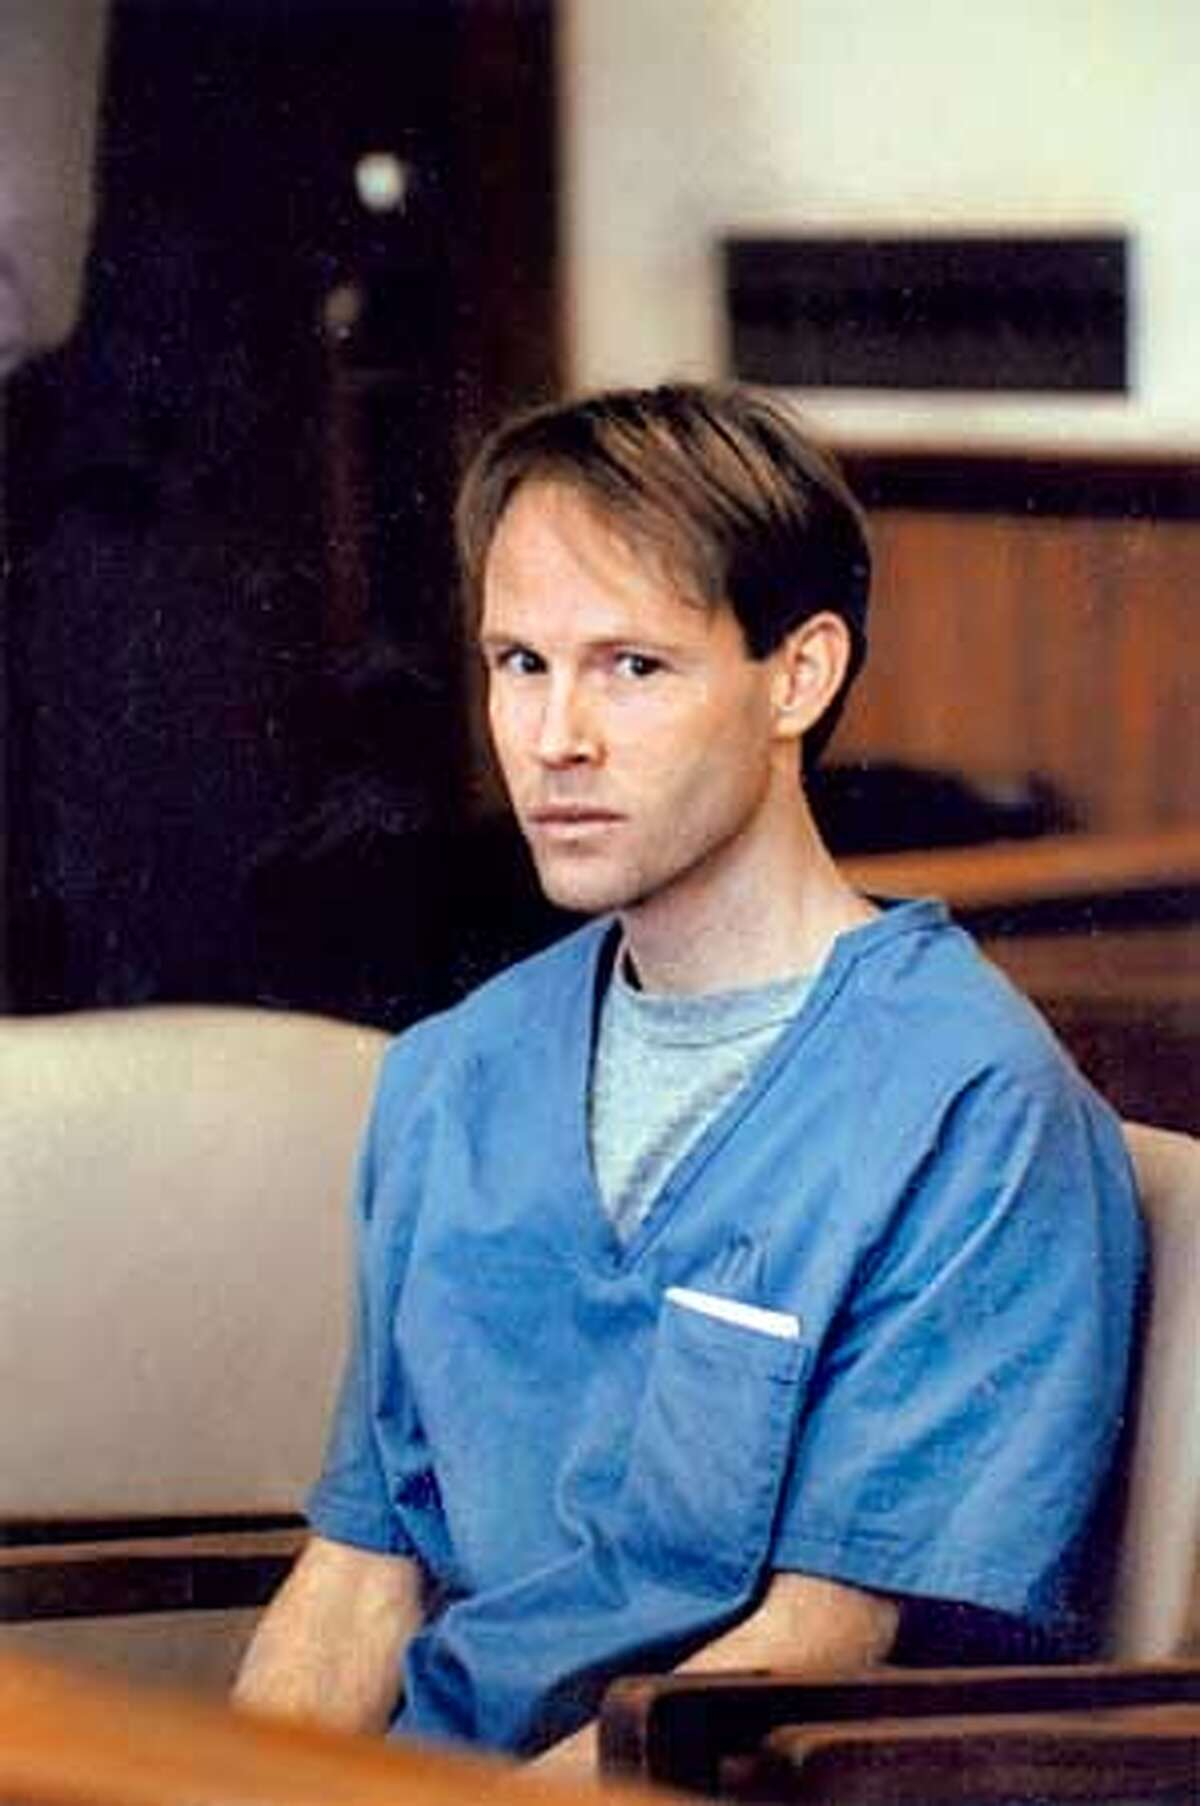 James Hogue used his wits, ingenuity and sports prowess to convince people he was someone he was not. File Photo (1991)